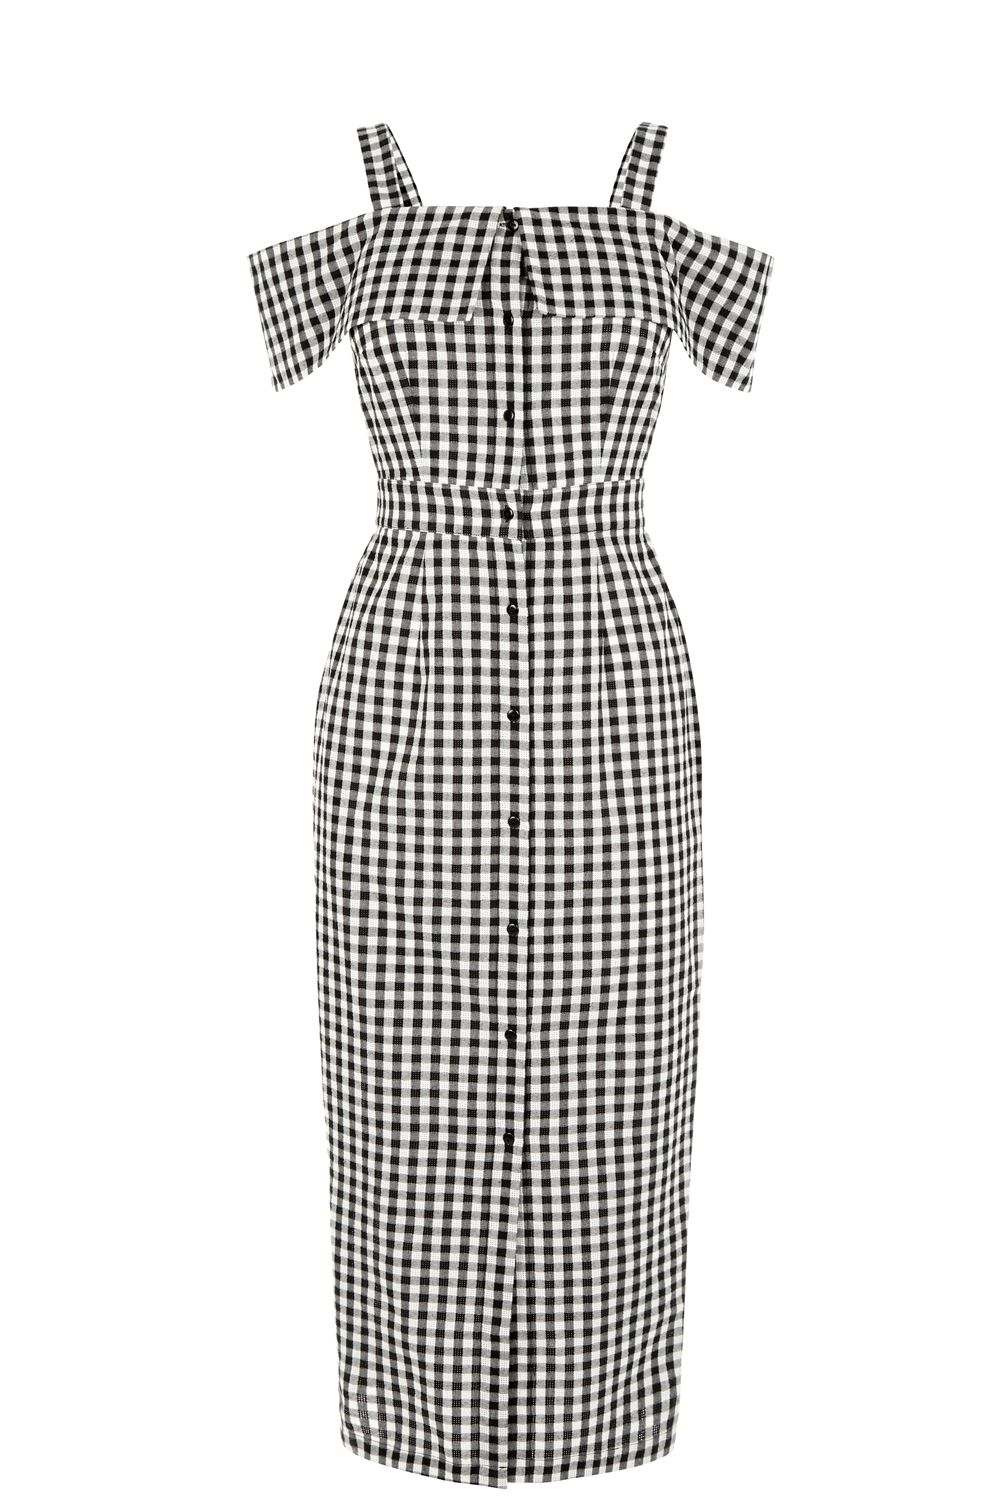 Warehouse Gingham Off Shoulder Dress Black £49.00 AT vintagedancer.com